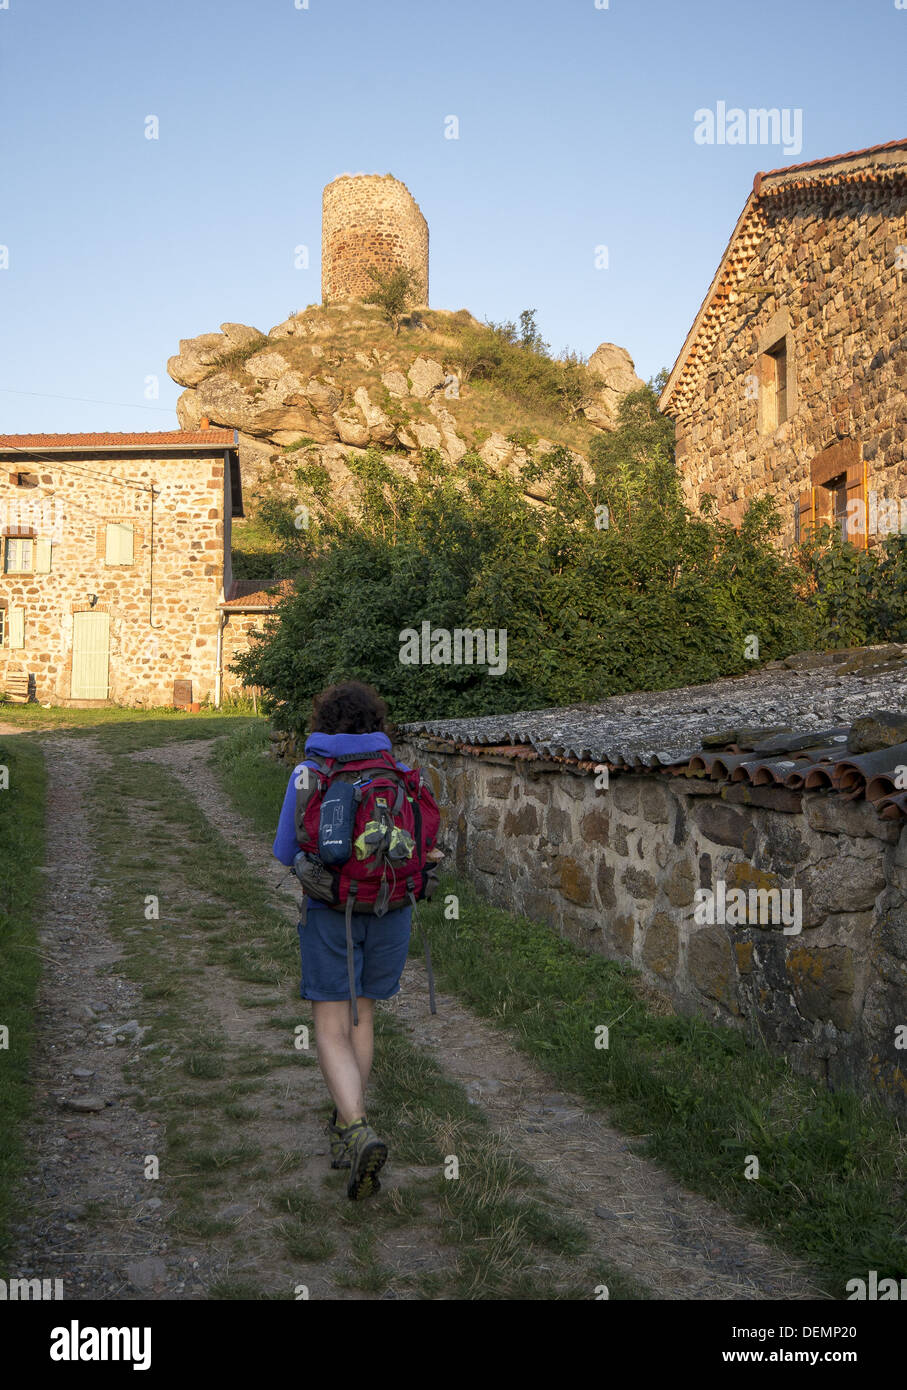 The rural village of Rochegude on the GR65 walking route in France. The Way of St James, Camino de Santiago - Stock Image